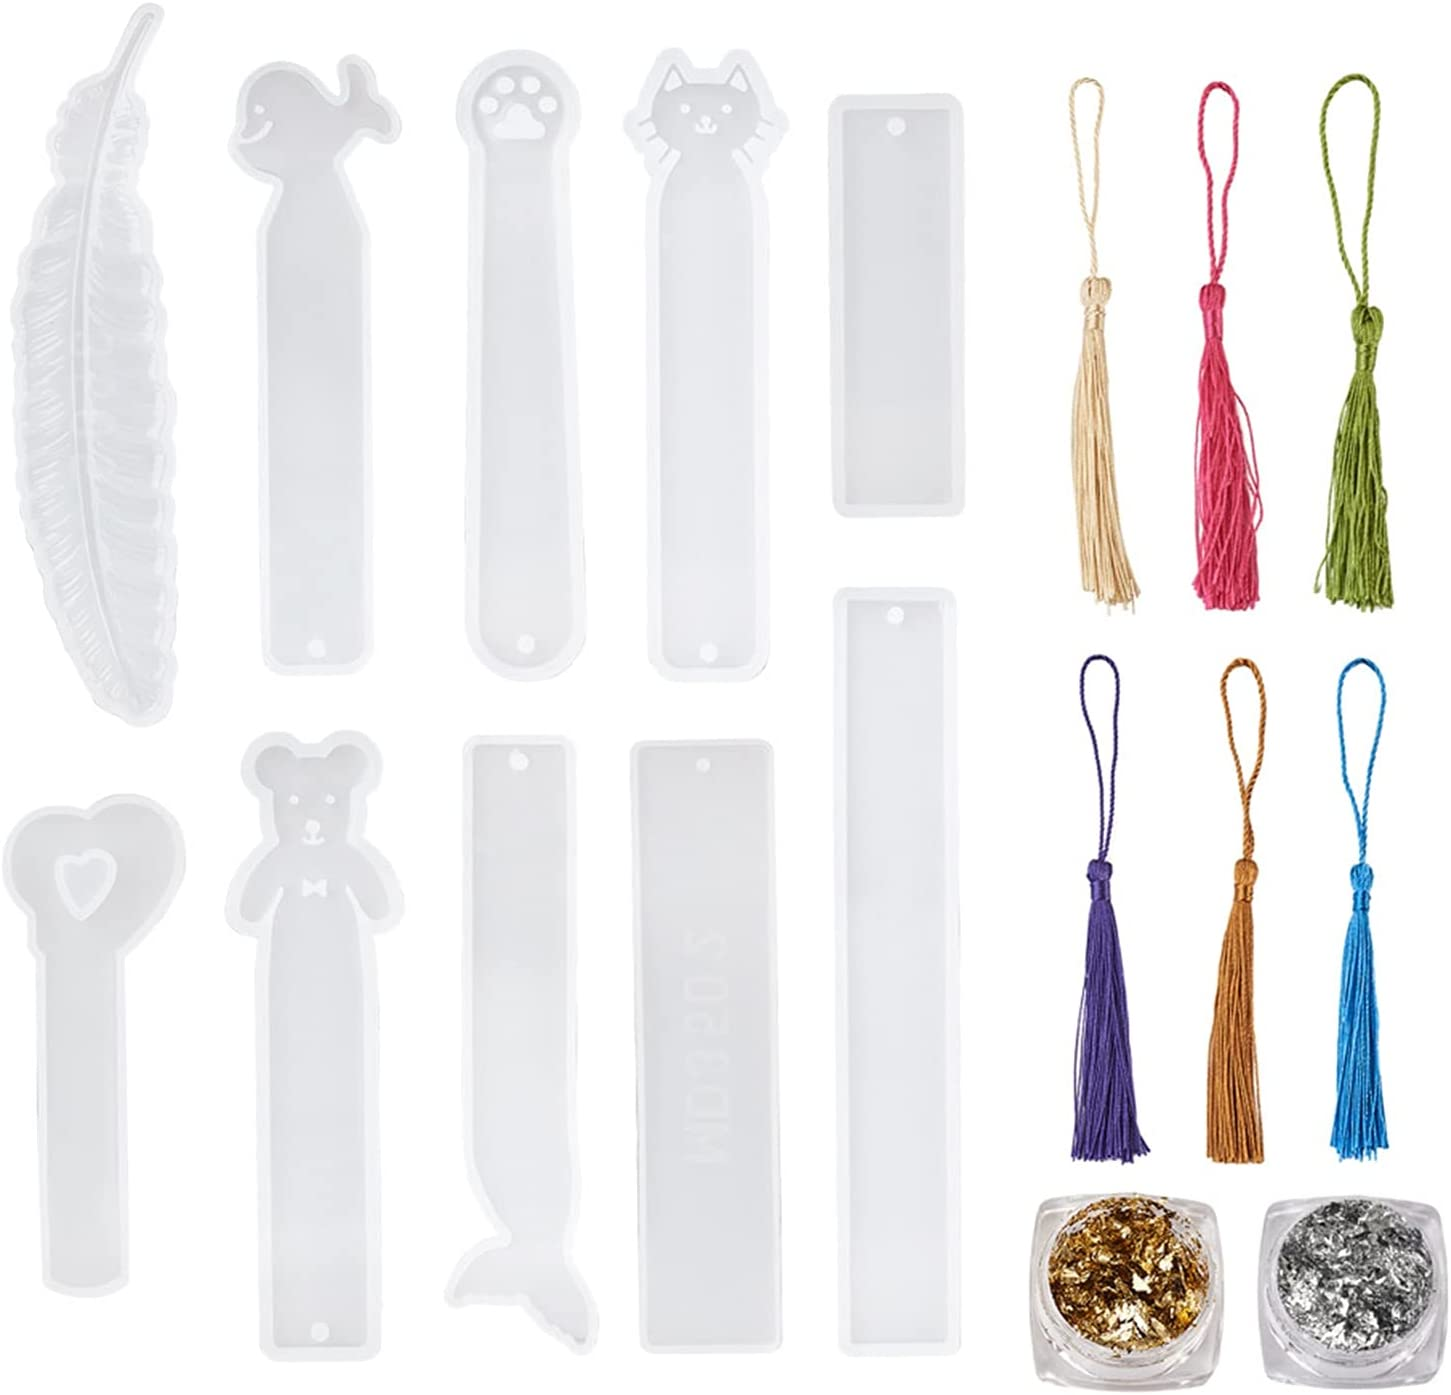 10pcs Bookmark Resin Mold with Tassels NEW Popular products before selling ☆ Colorful Rectangle 12pcs